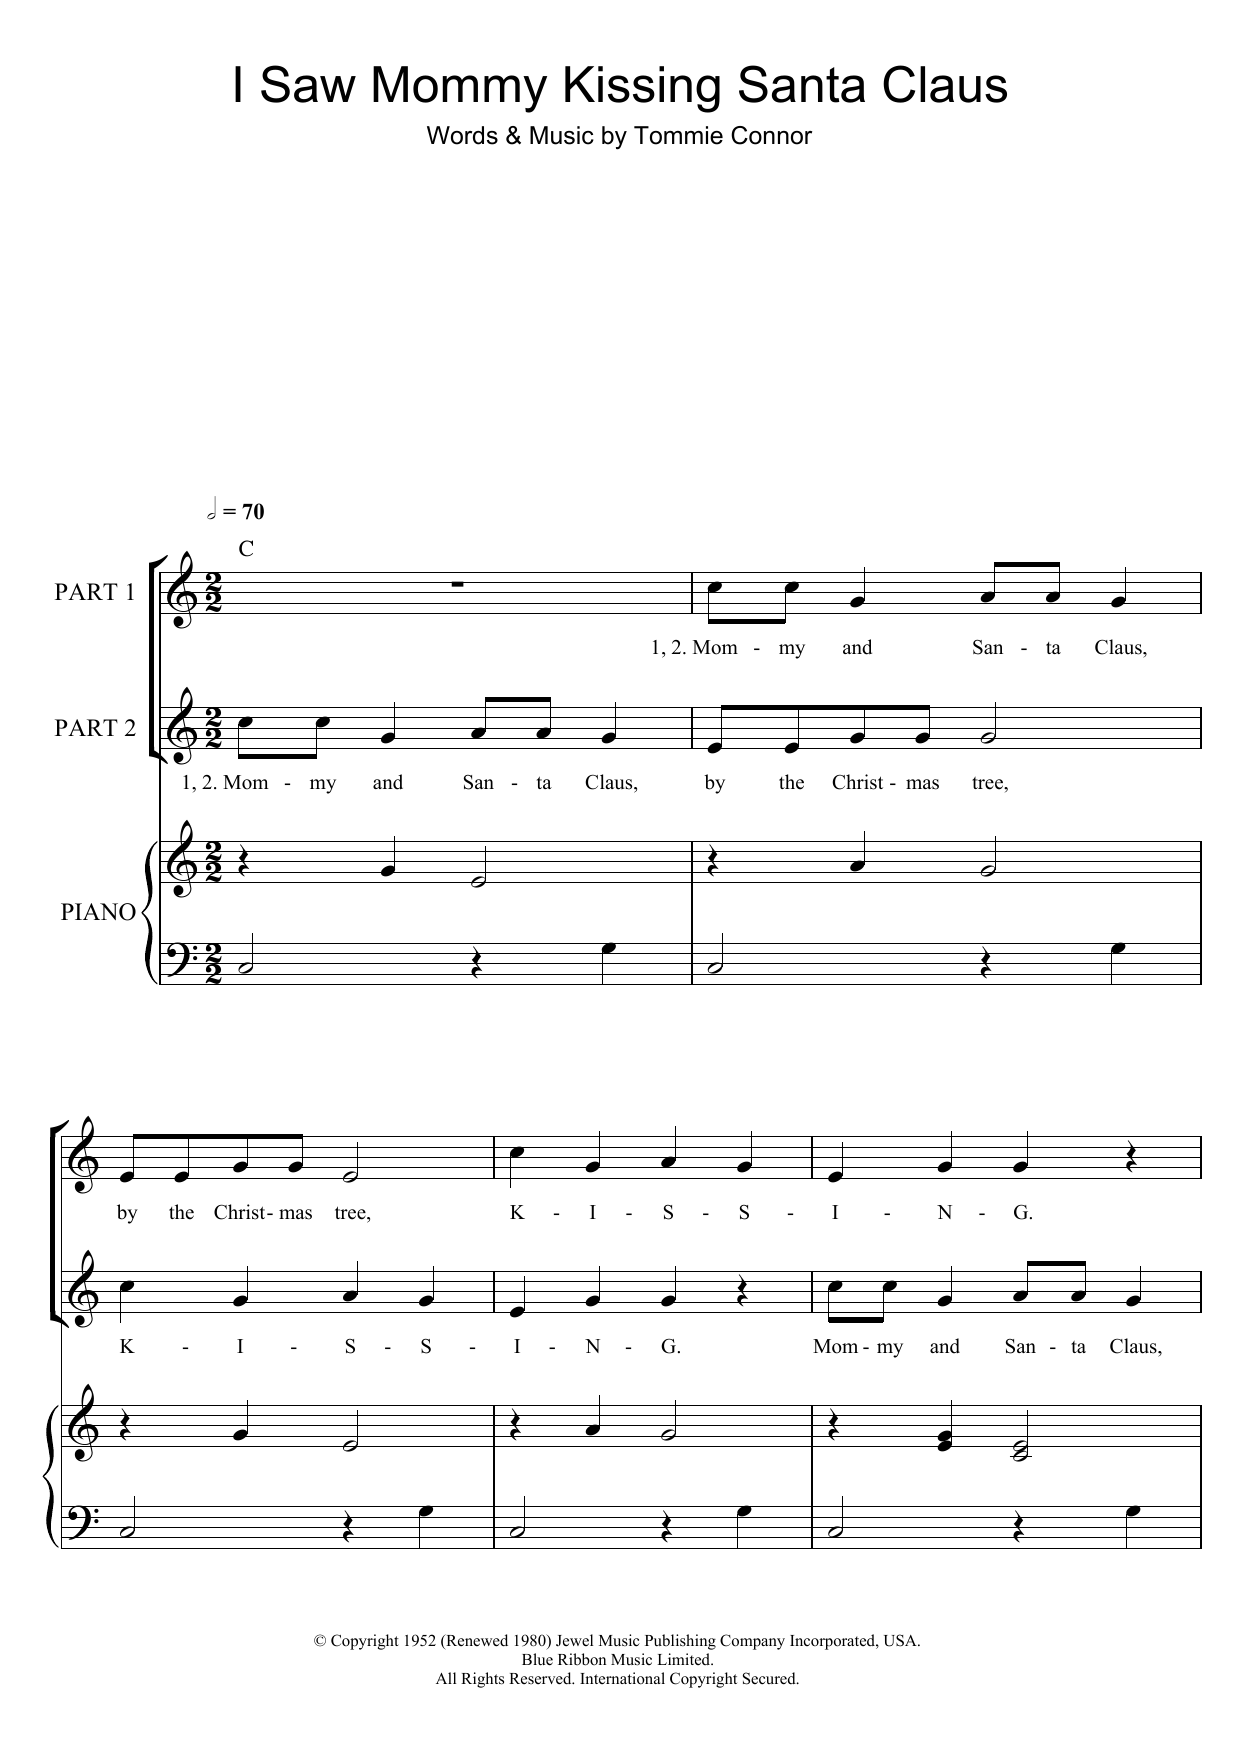 Tommie Connor I Saw Mommy Kissing Santa Claus (arr. Rick Hein) sheet music notes and chords. Download Printable PDF.